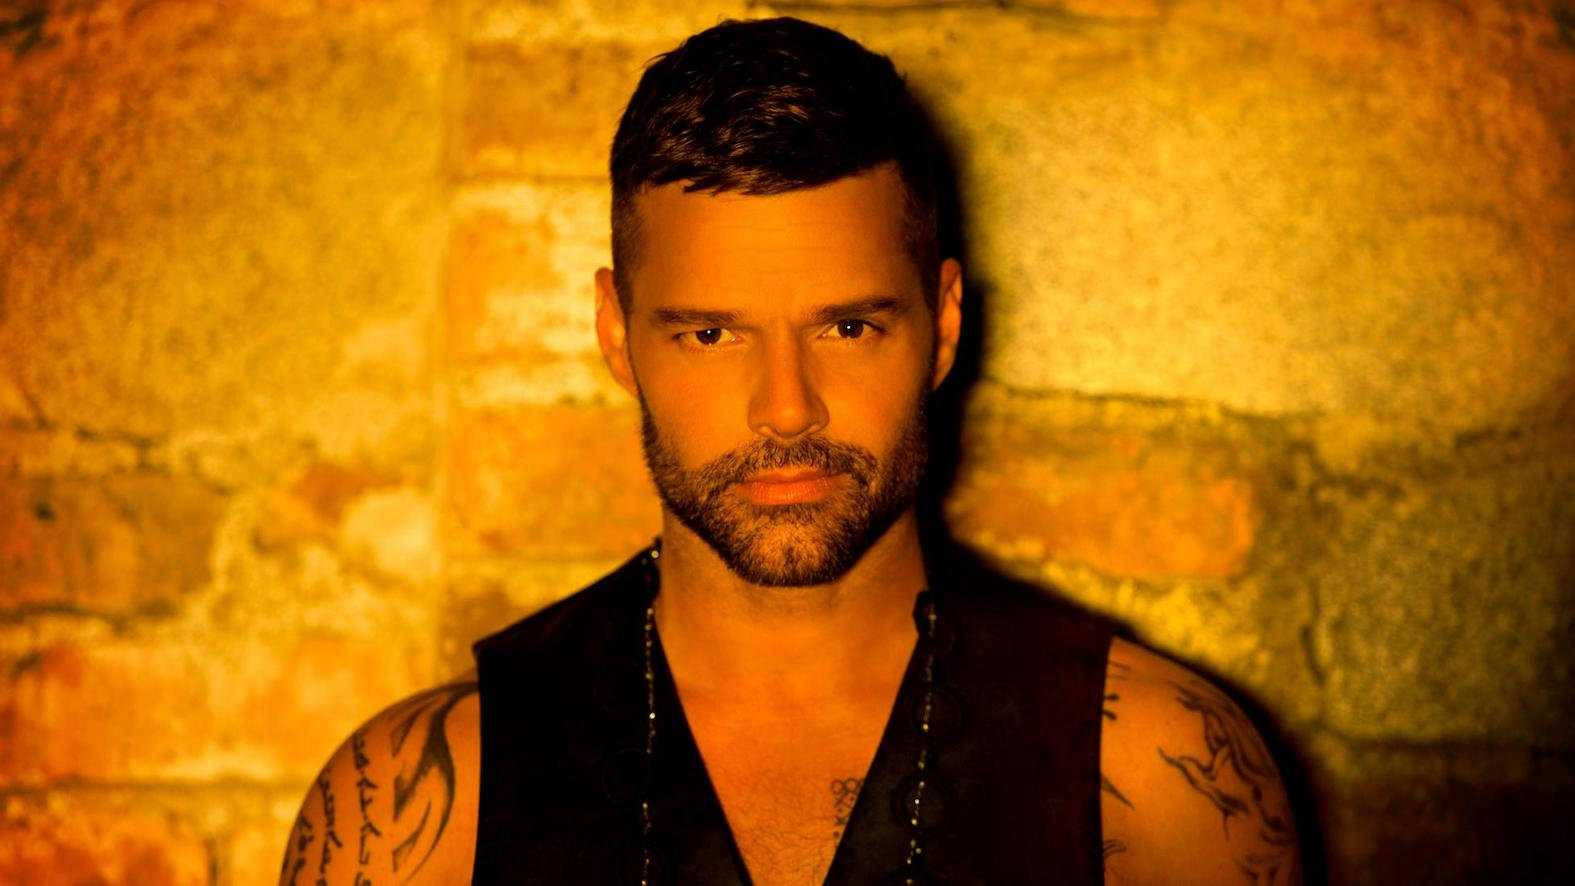 Ricky Martin is a famous Latin pop singer who's now out and proud